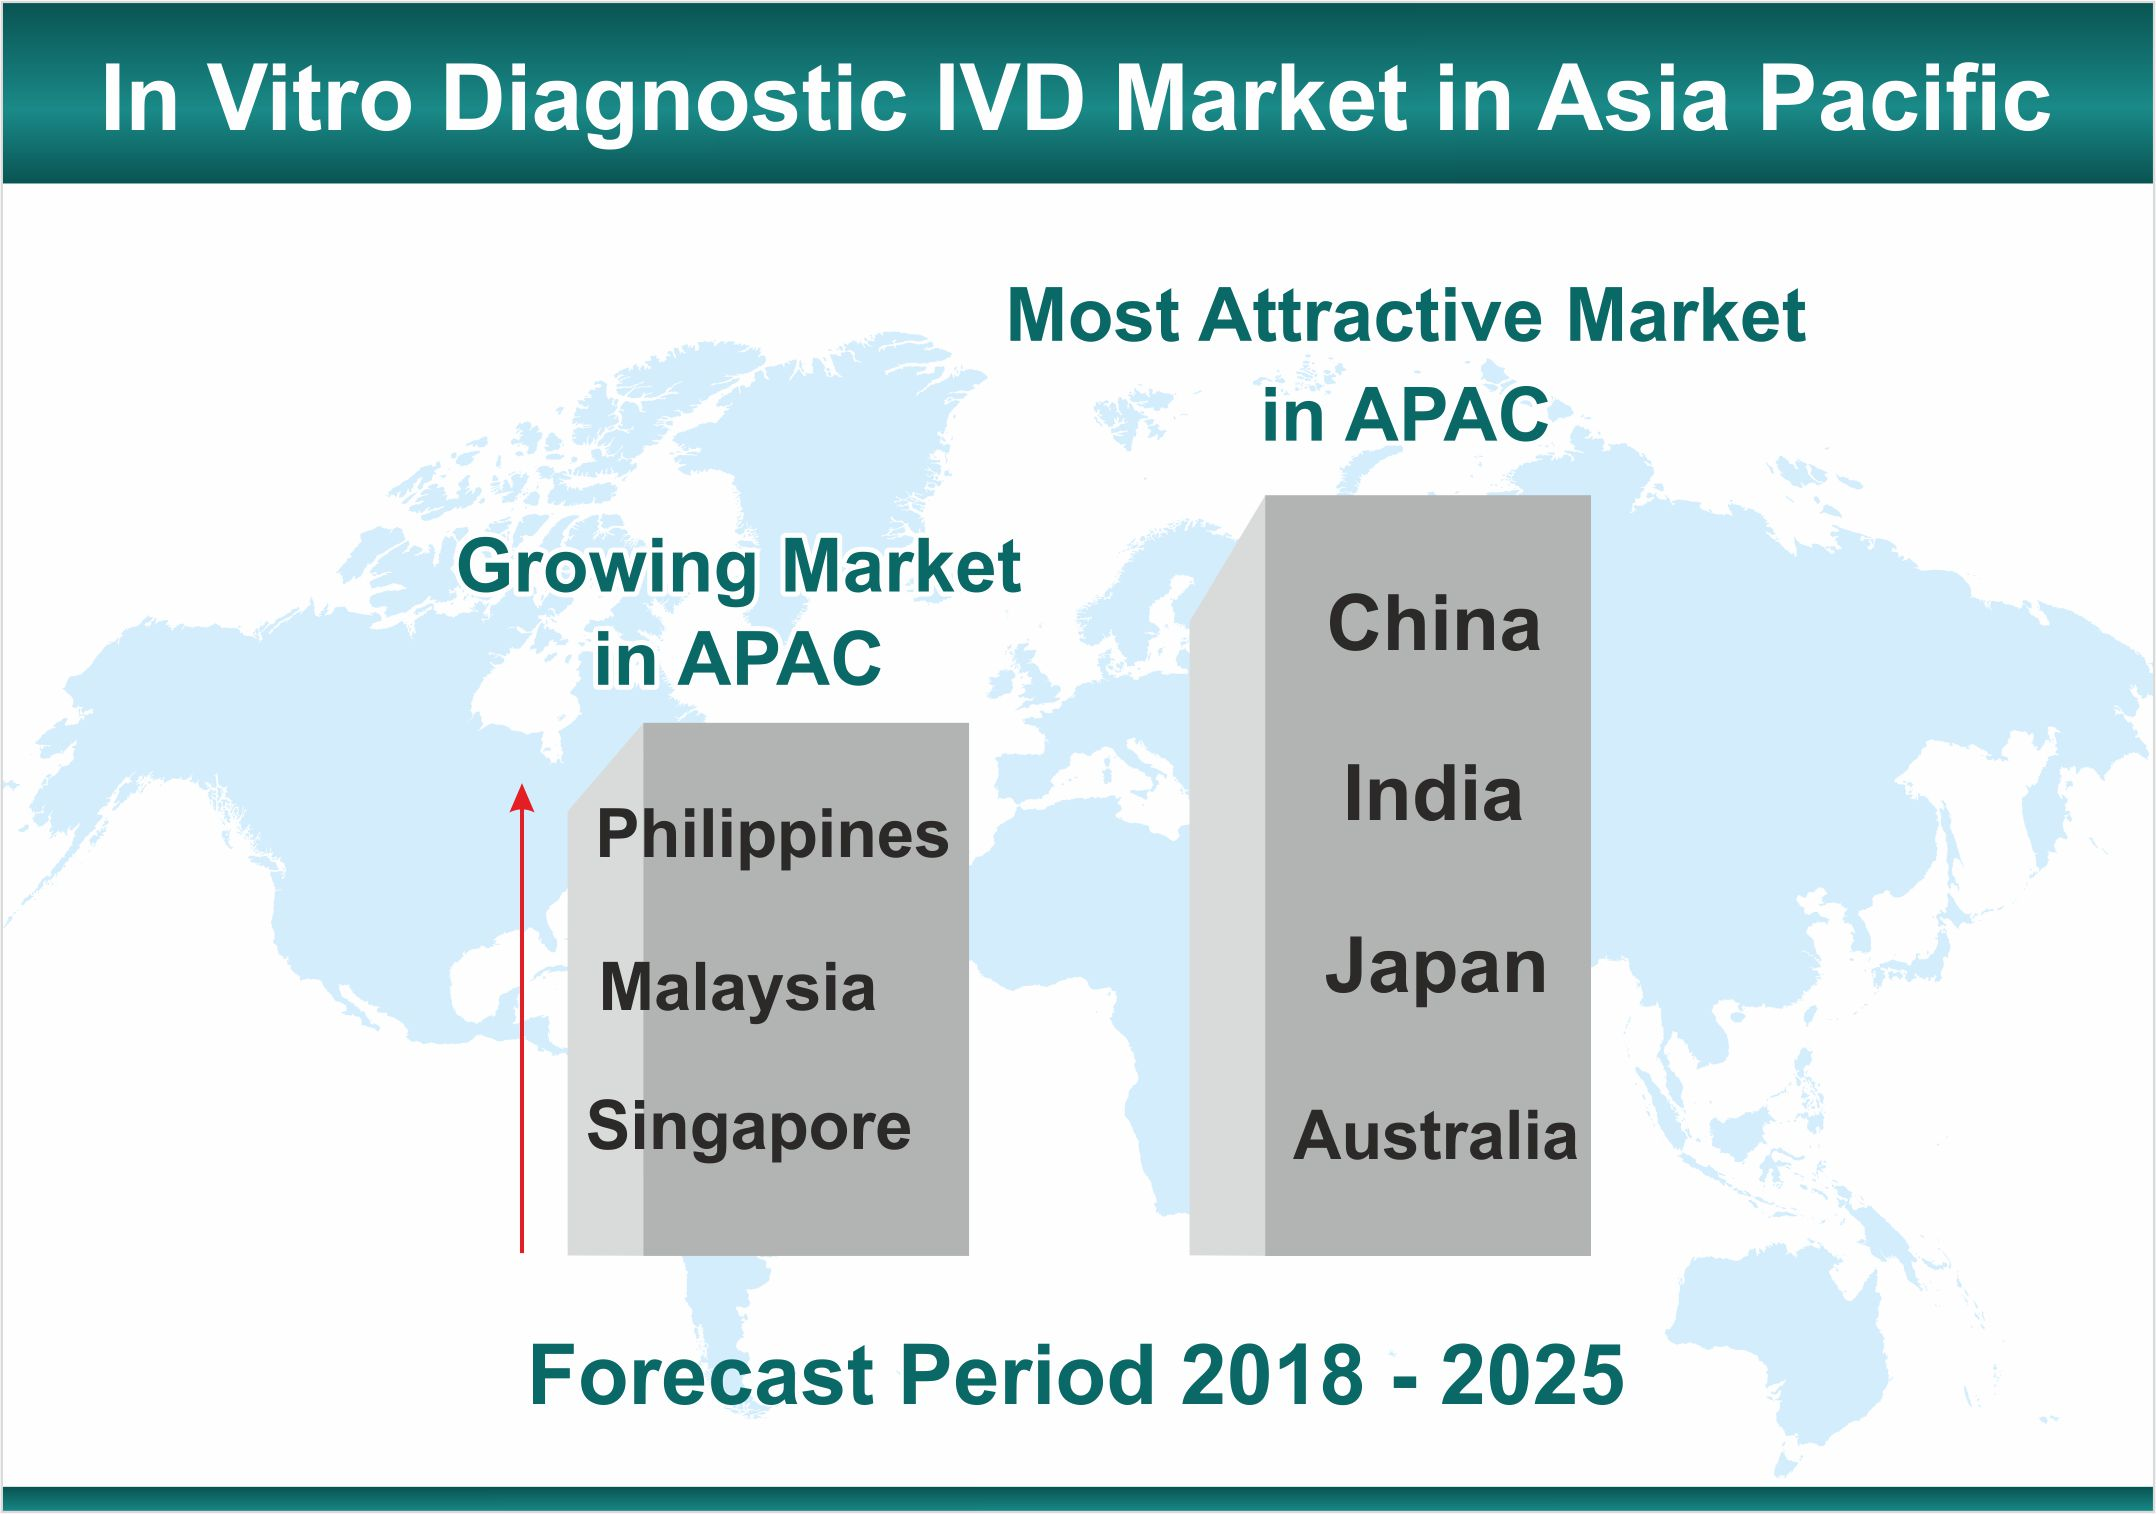 In Vitro Diagnostic IVD Market in Asia Pacific Gaining Focus with Growing IVD Manufacturers